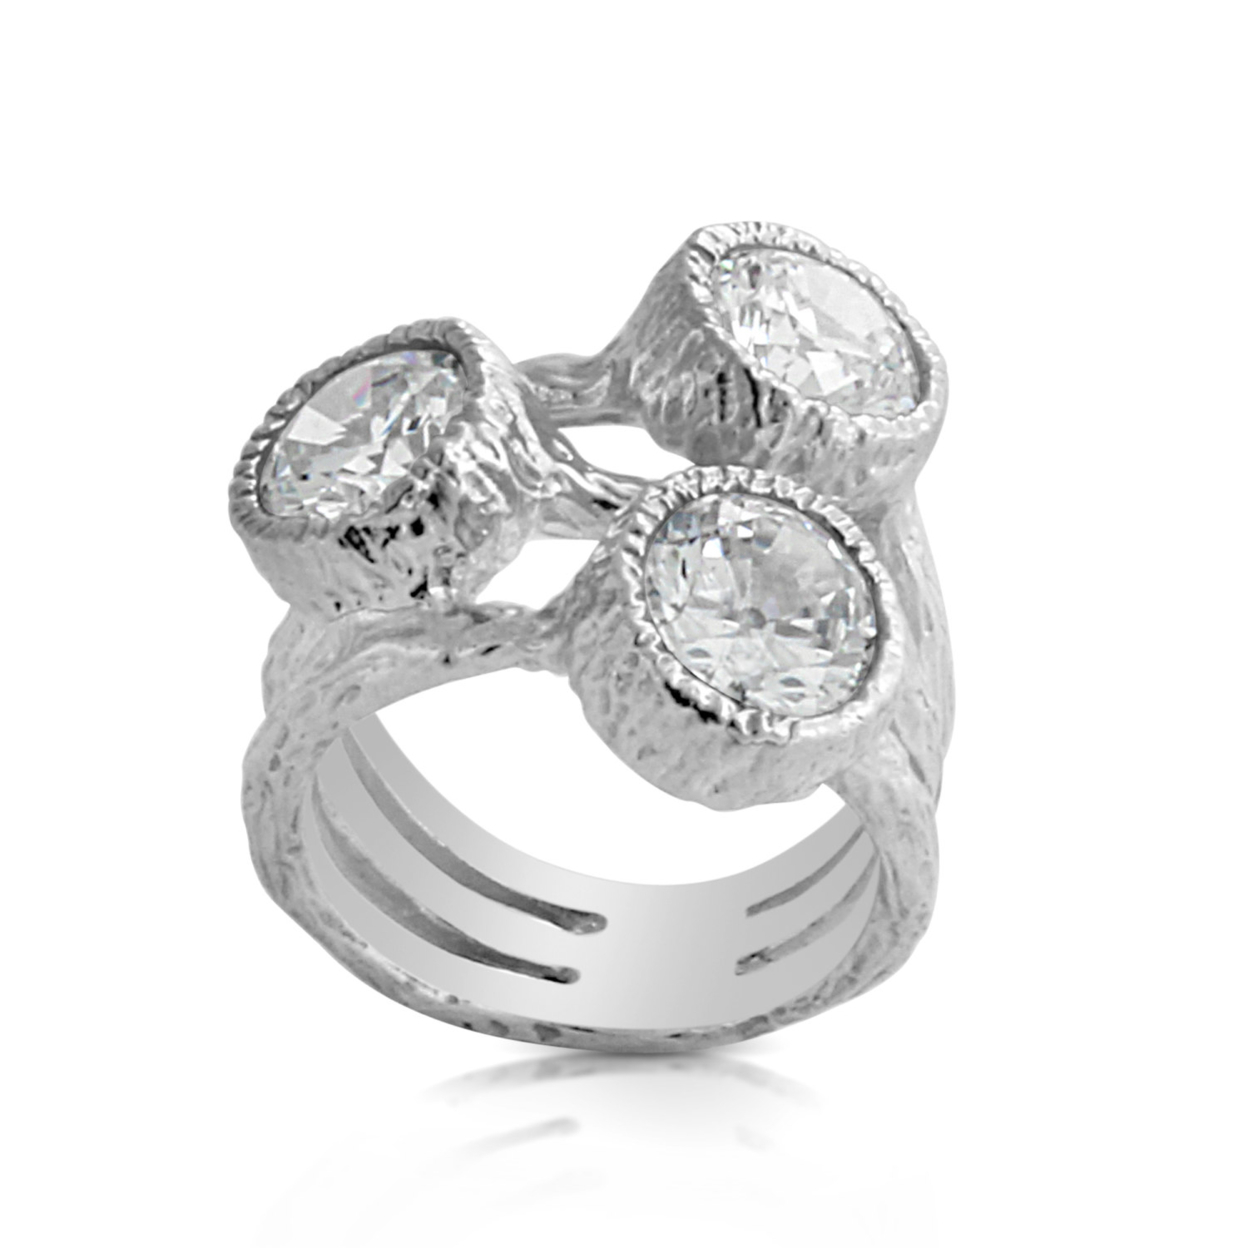 3 Clear Round Cubic Zirconia Stones Bezel Setting Textured Triple Band Womens Ring #925 Sterling Silver #azaggi R0237s 5